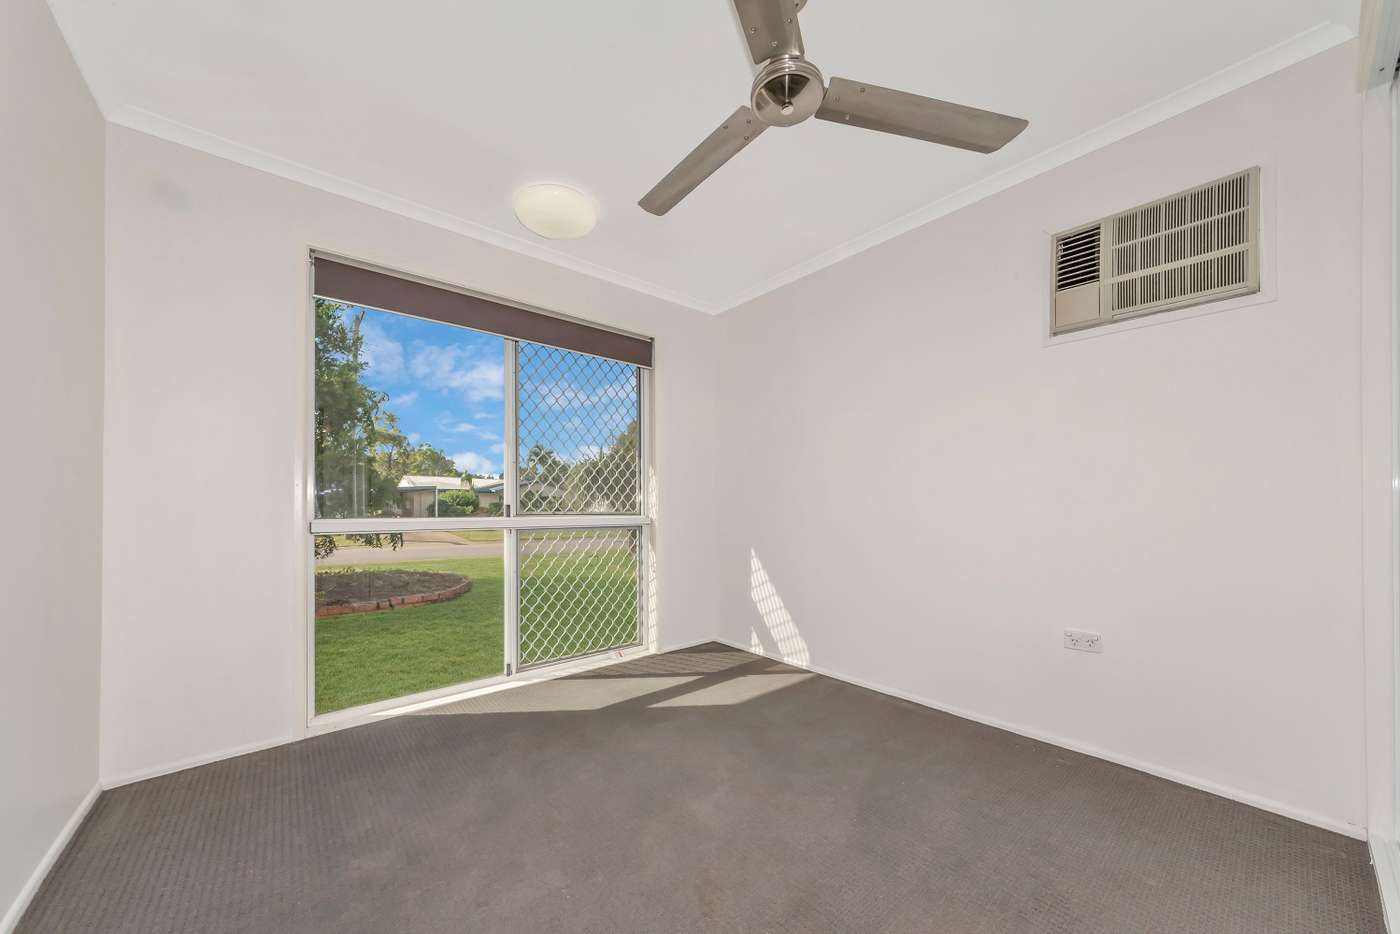 Sixth view of Homely house listing, 4 Kayleen Court, Burdell QLD 4818